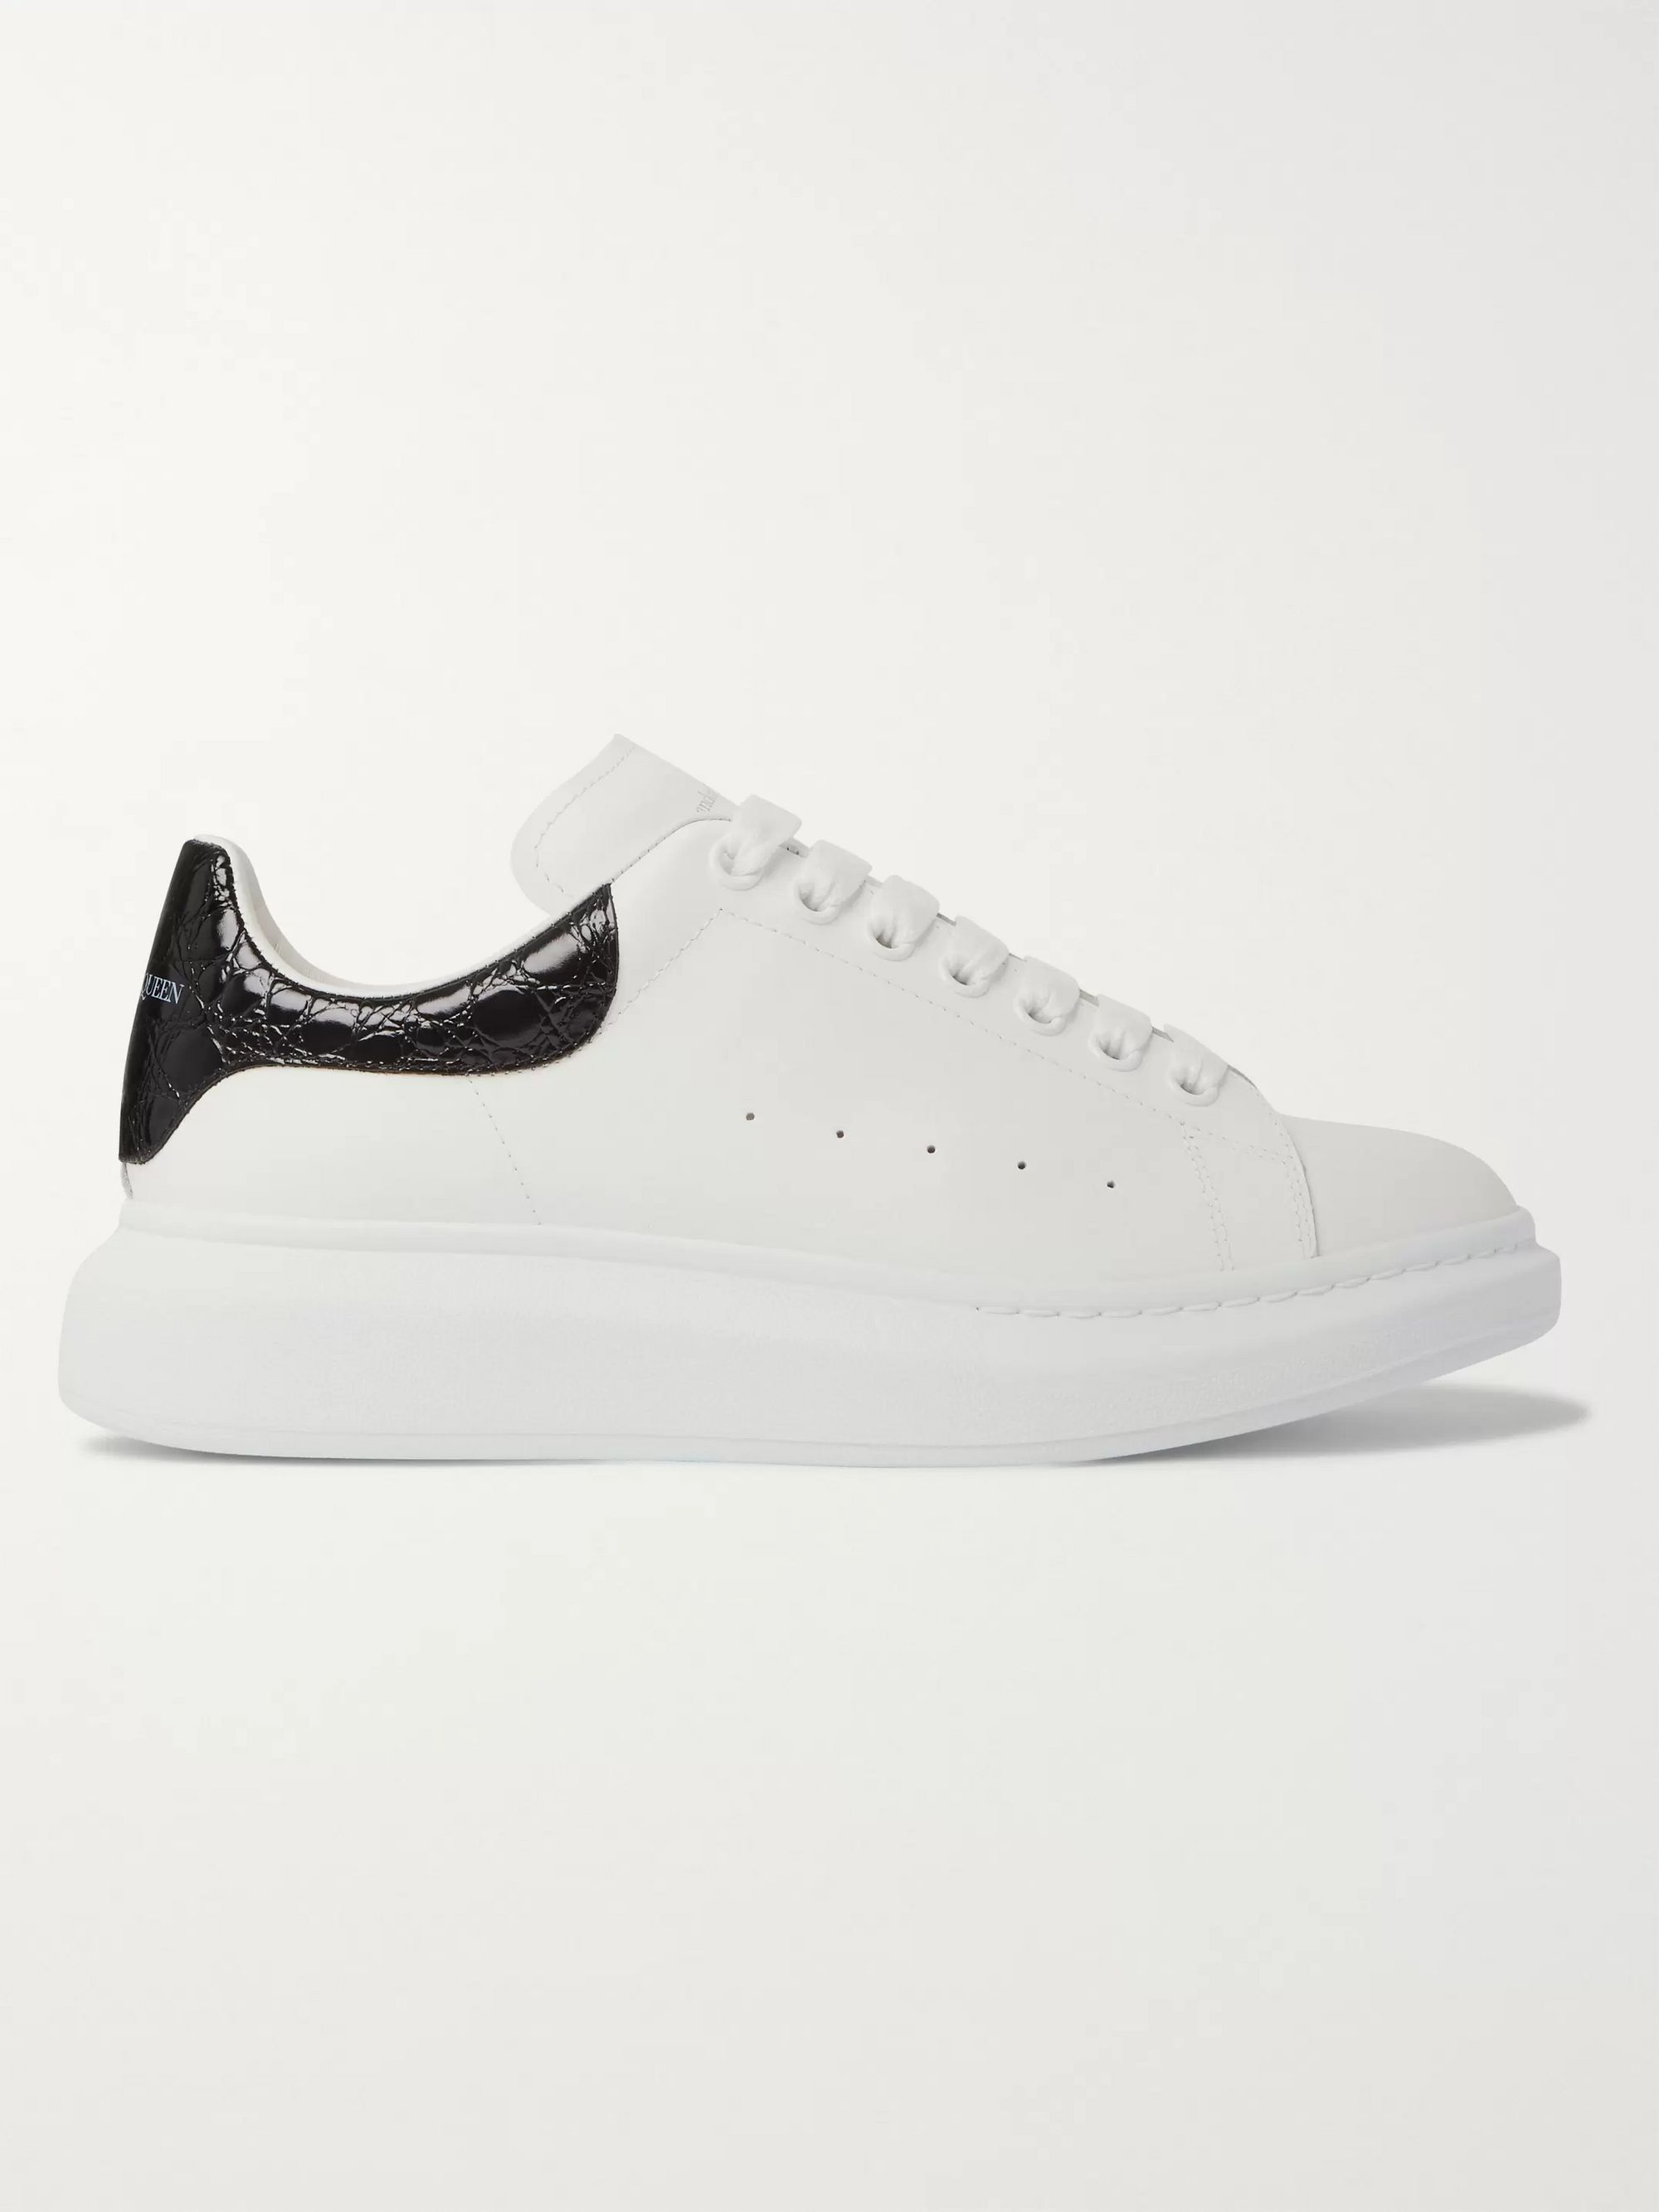 White Exaggerated-sole Croc Effect-trimmed Leather Sneakers   Alexander Mcqueen